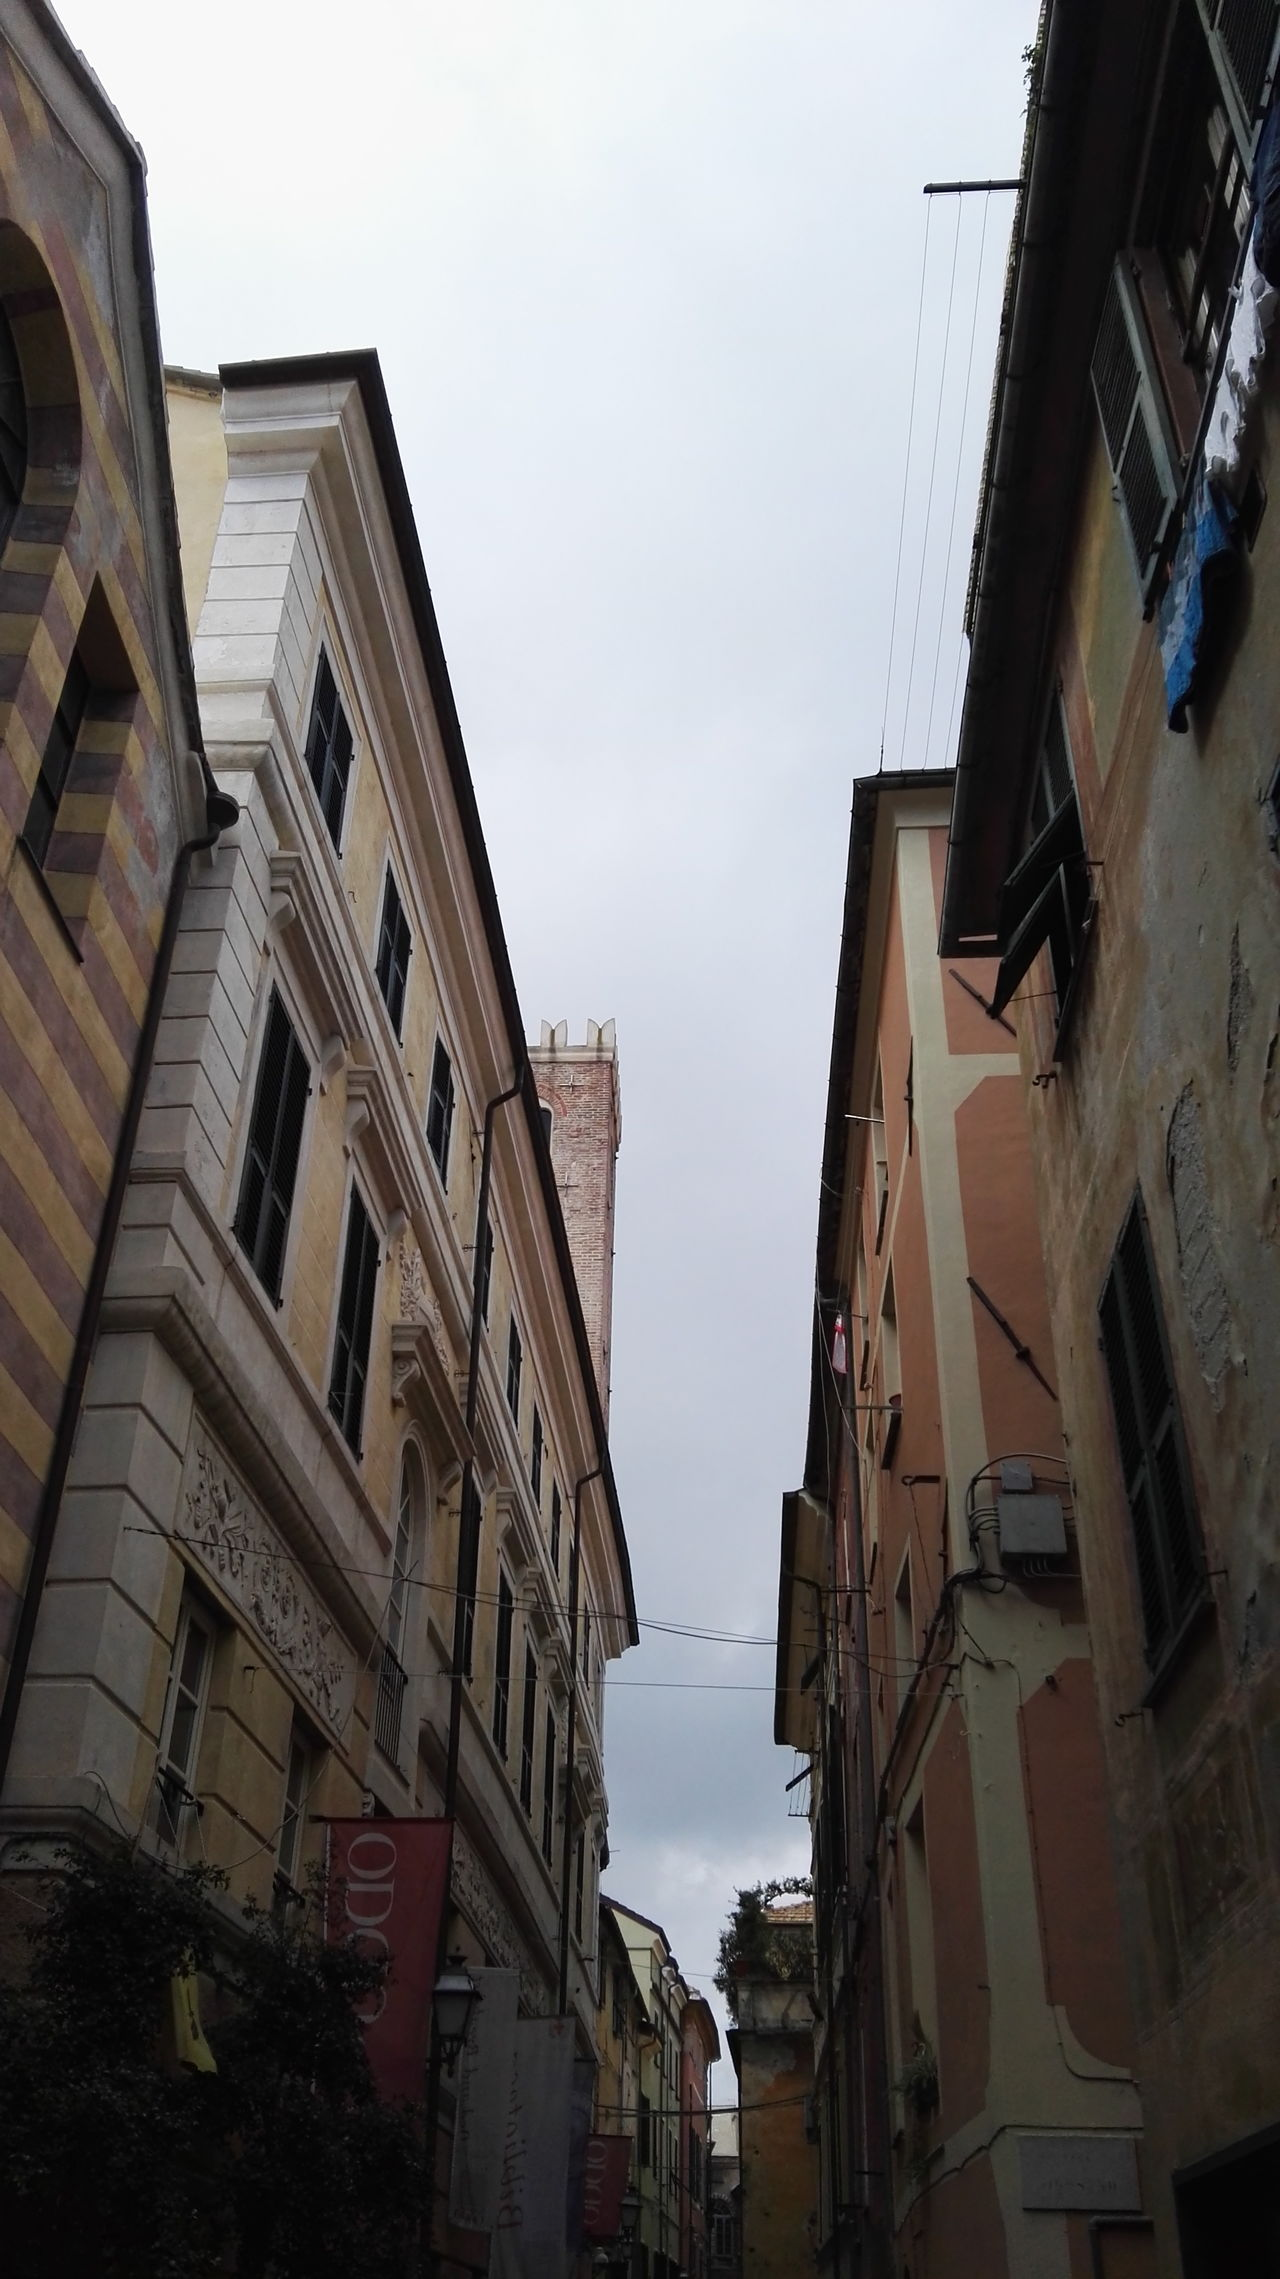 Architecture Building Building Exterior Built Structure City City Life Clear Sky Day Flower Rivier House Liguria Low Angle View No People Old Town Outdoors Residential Building Residential District Residential Structure Sky Street Town Window